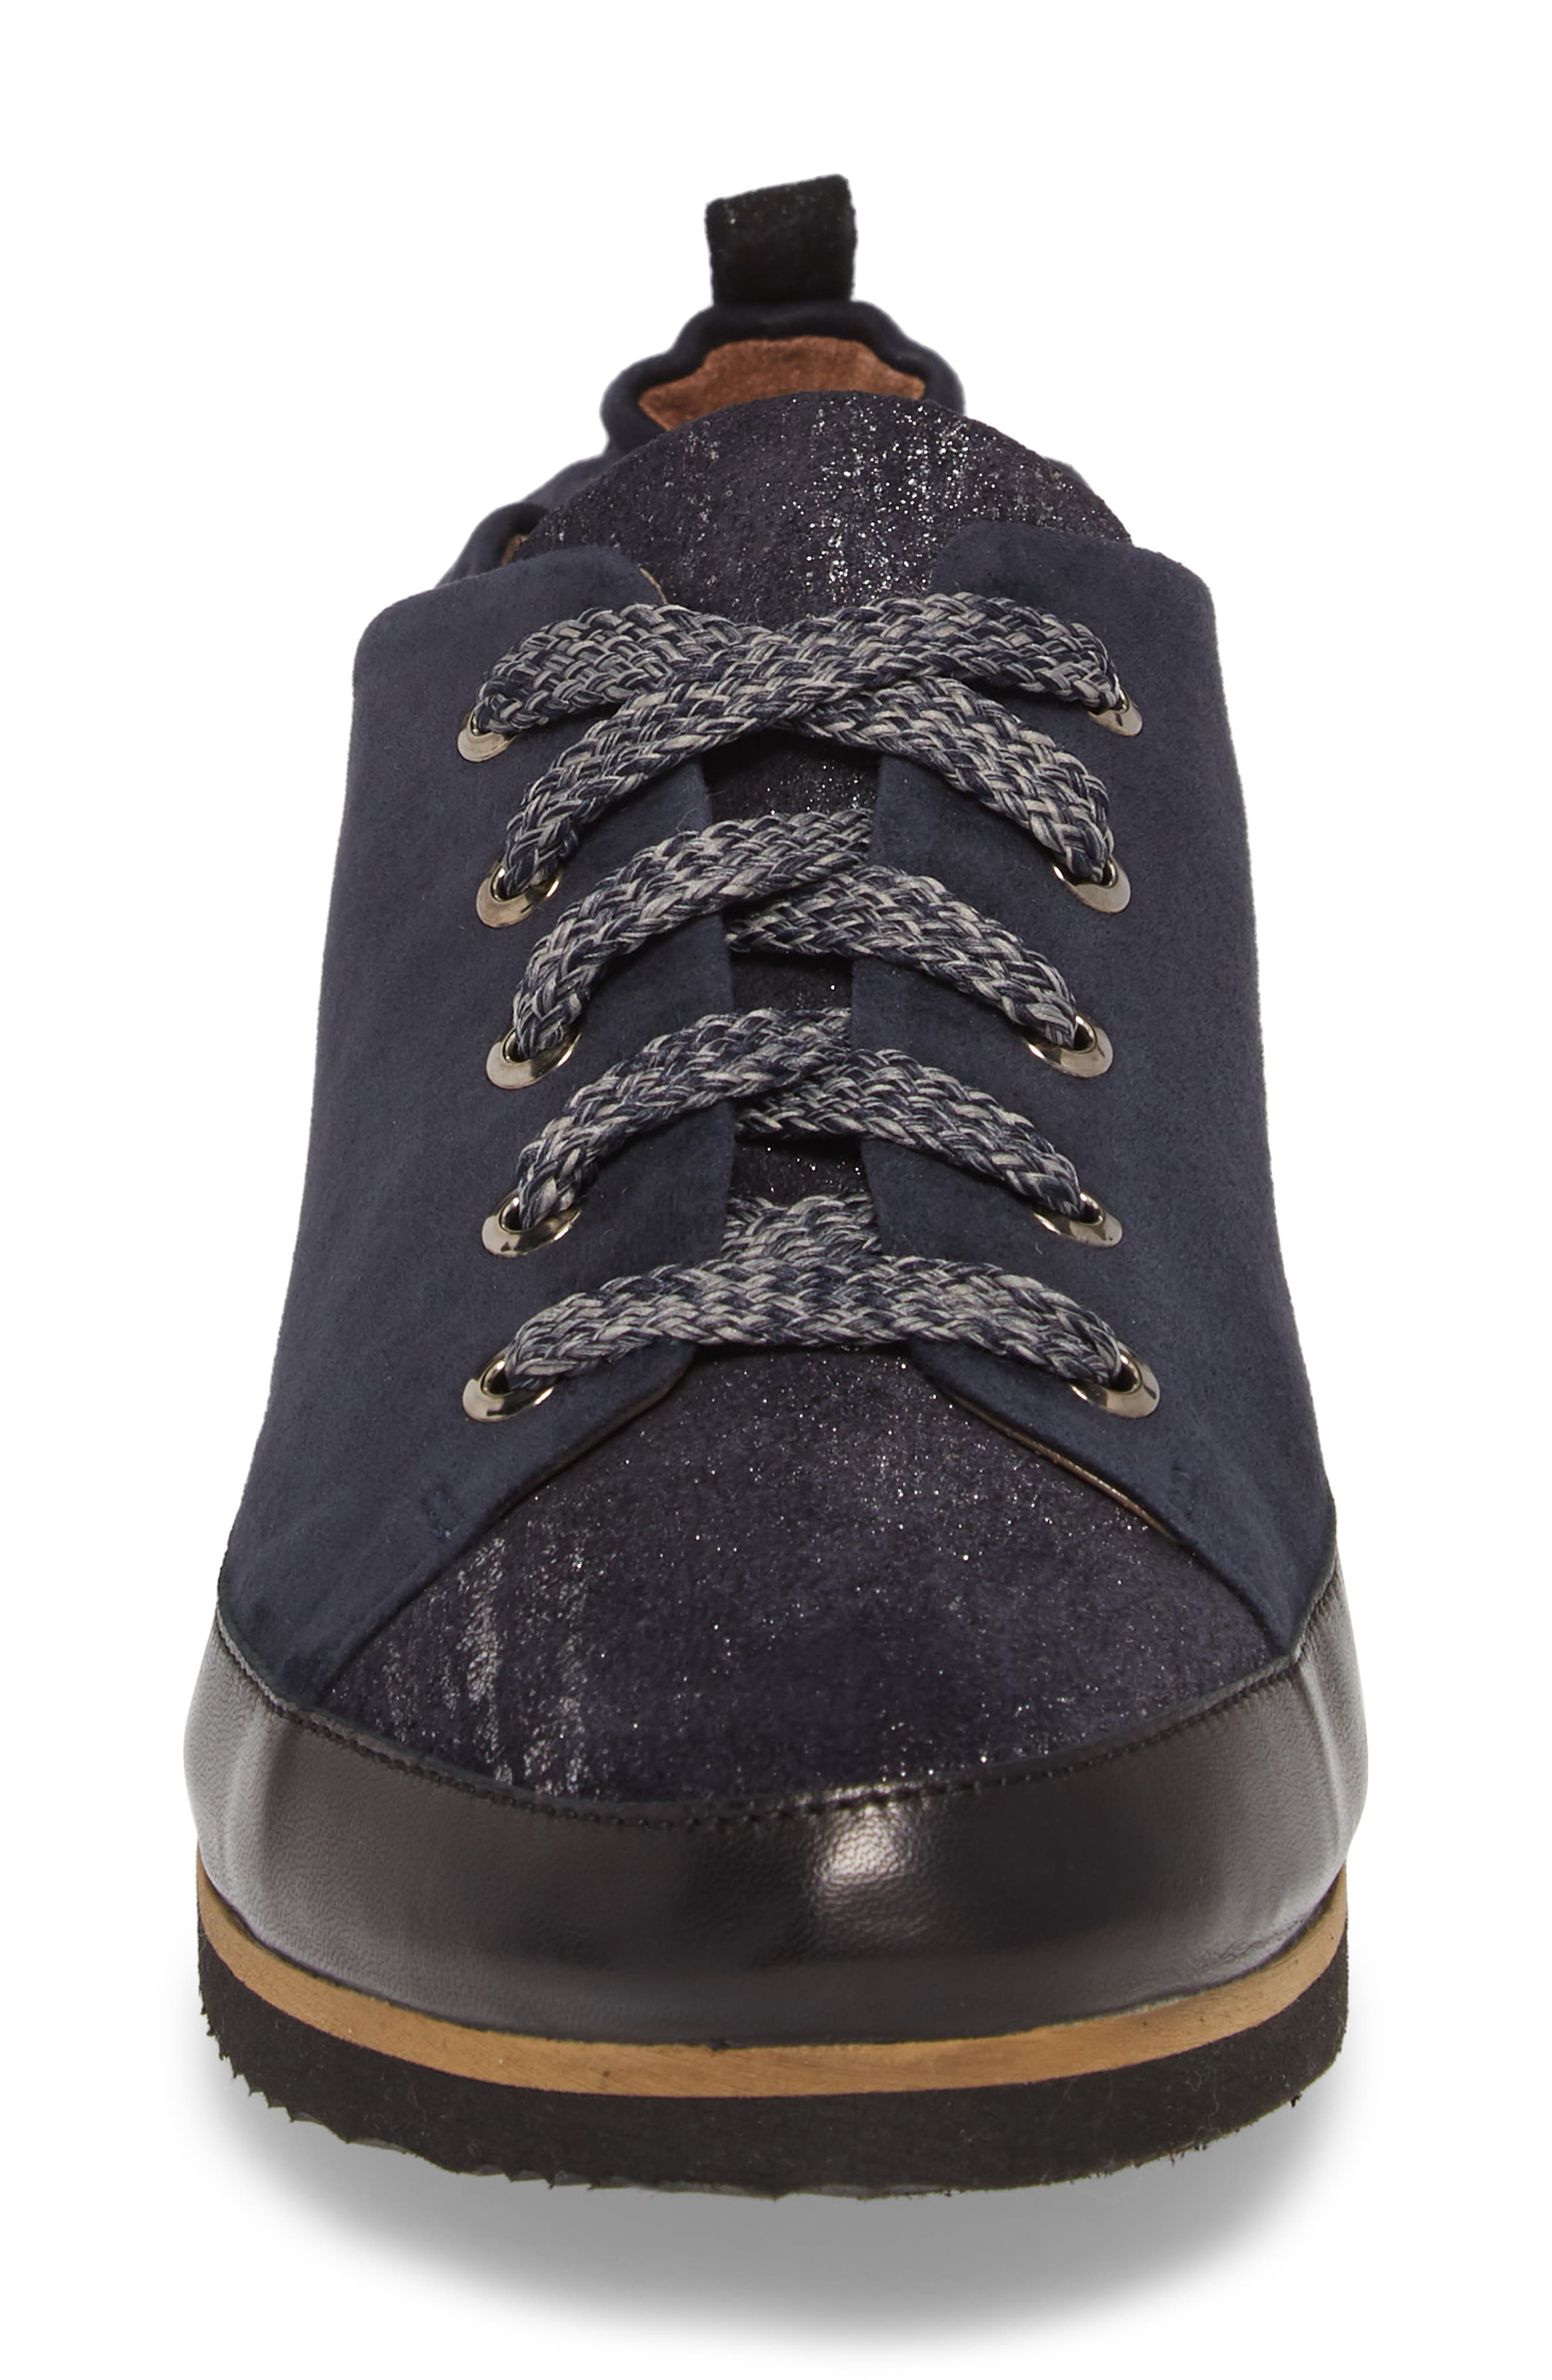 Nettie Lace-Up Wedge Sneaker,                             Alternate thumbnail 4, color,                             FRENCH NAVY LEATHER